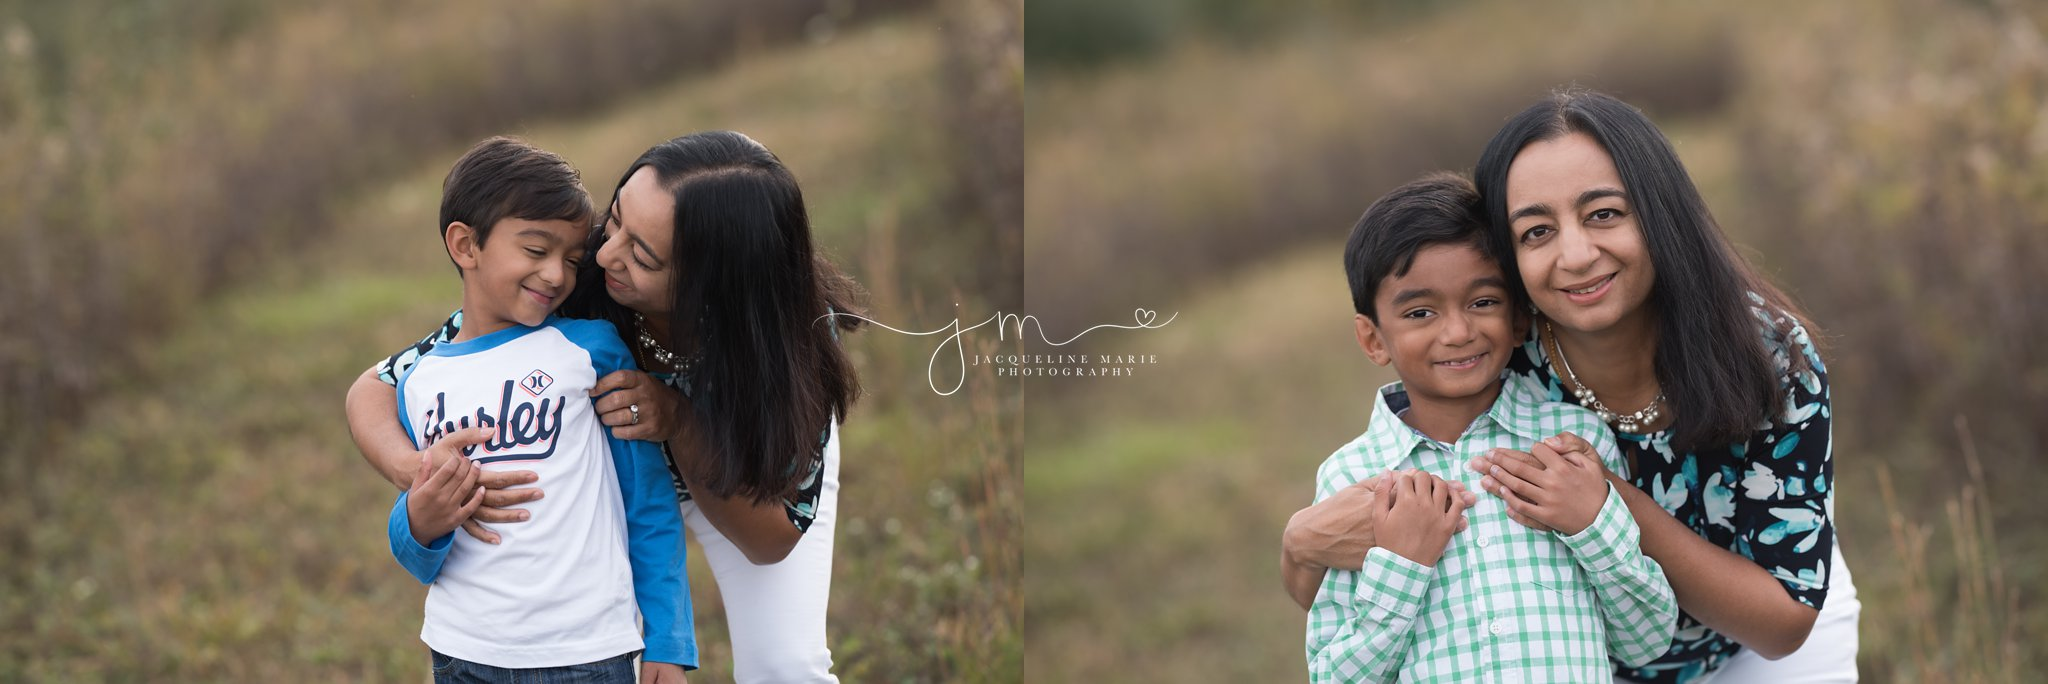 columbus ohio family photographer features images of mother and her children sharing a hug